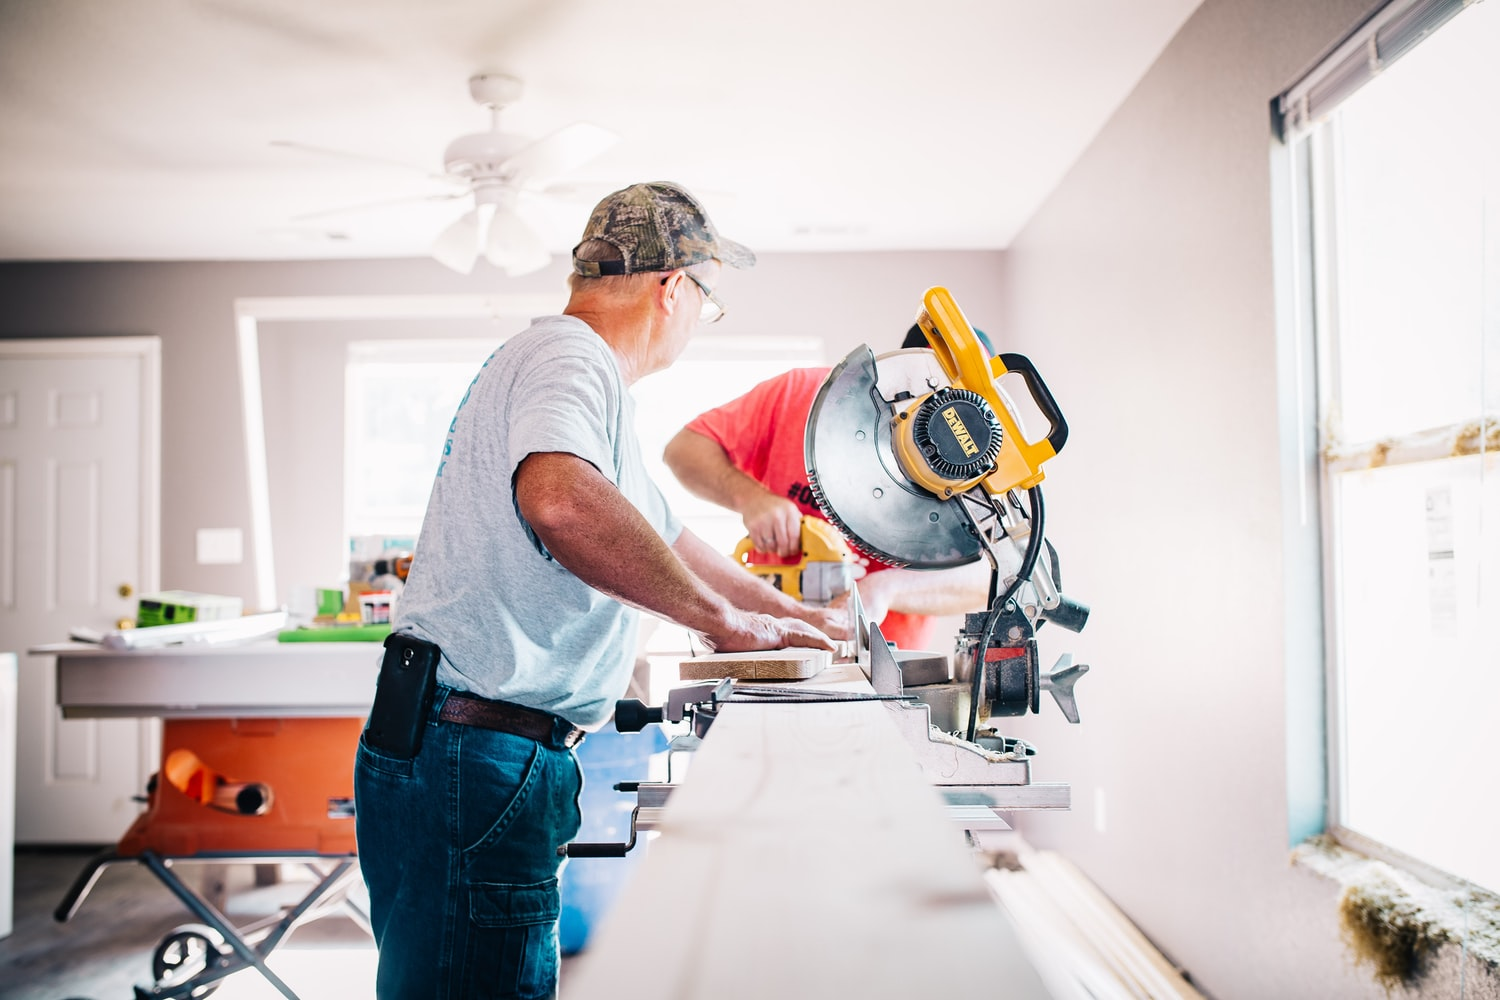 8 Home Renovation Tips to Save Money